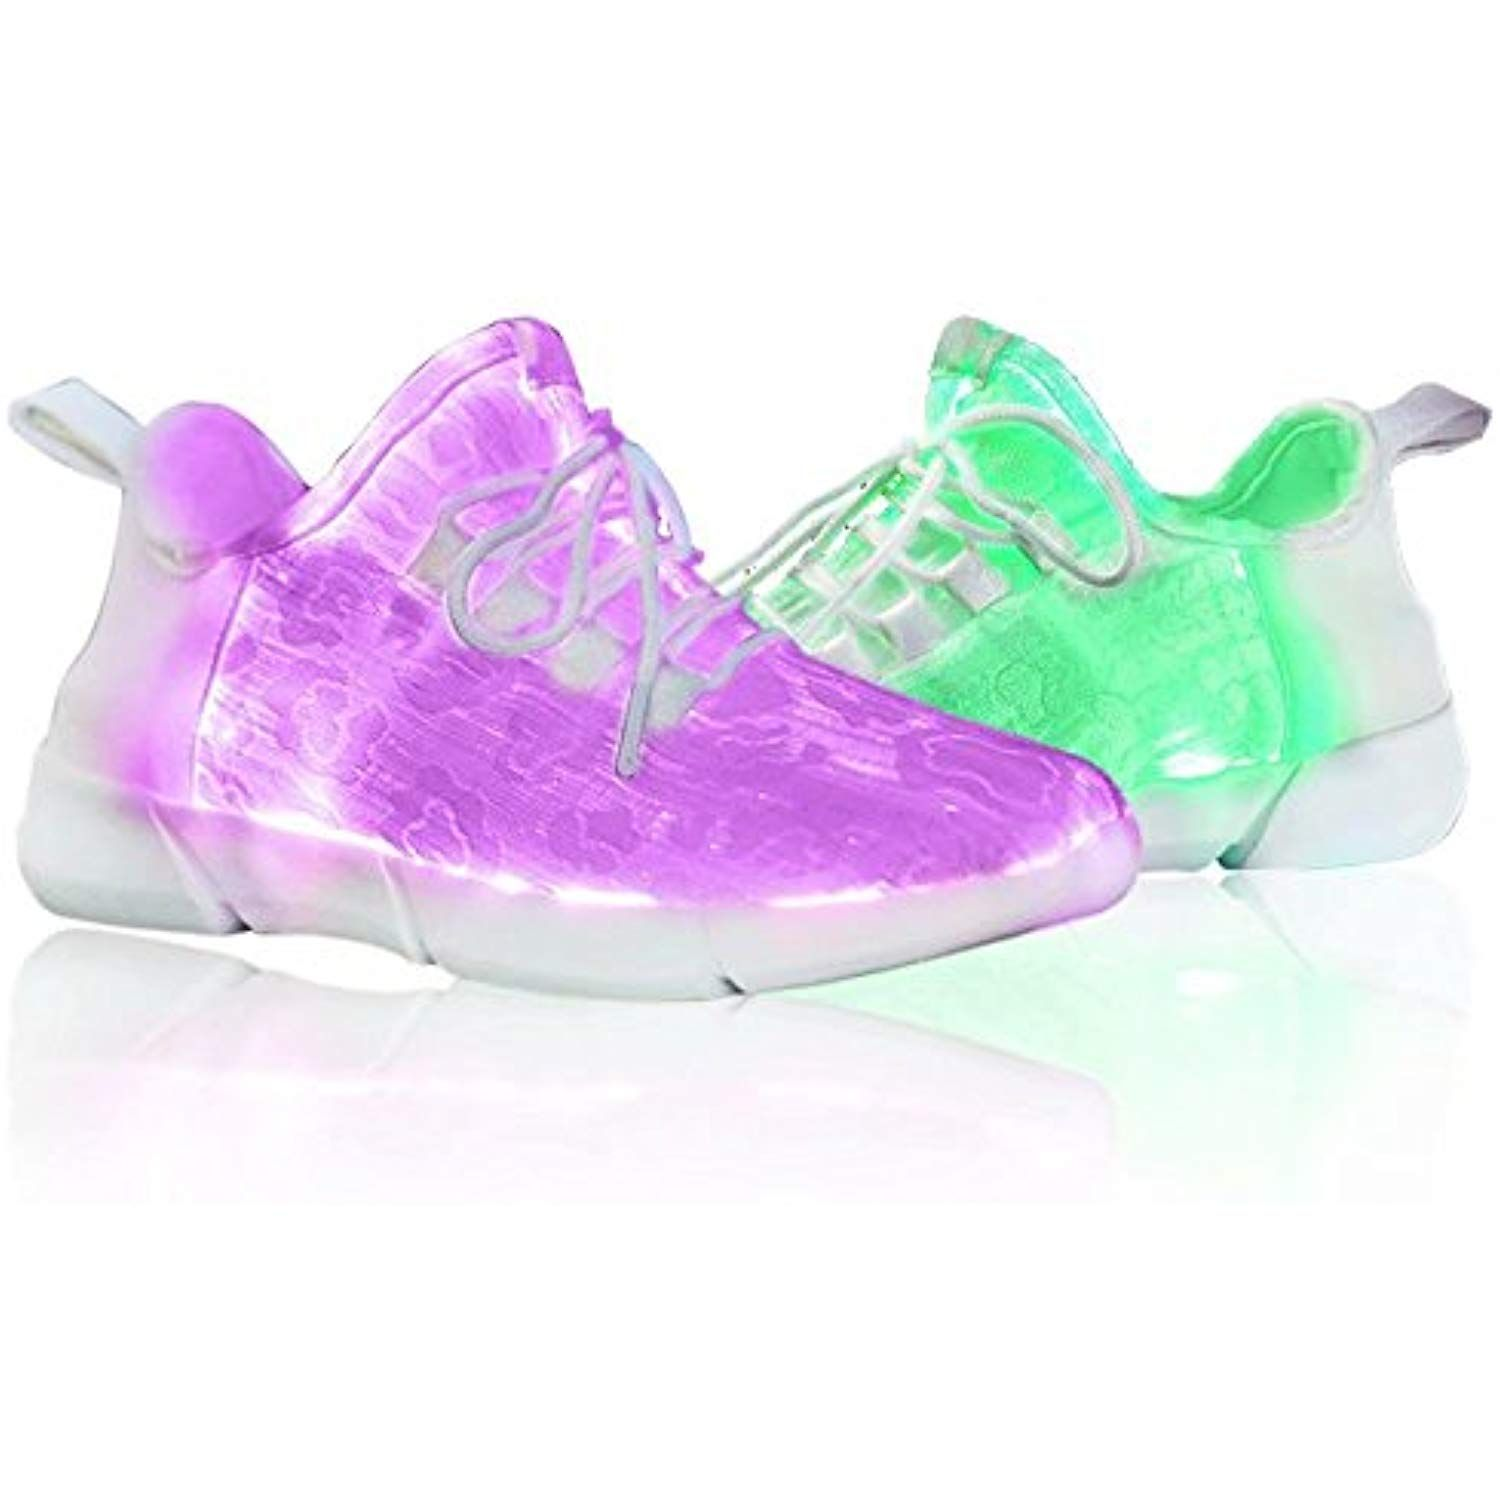 136f0575aad4 Fiber Optic LED Shoes Flashing Fashion Sneaker for Women Men USB  Rechargeable with 12 Color Changed     Details can be found by clicking on  the image.